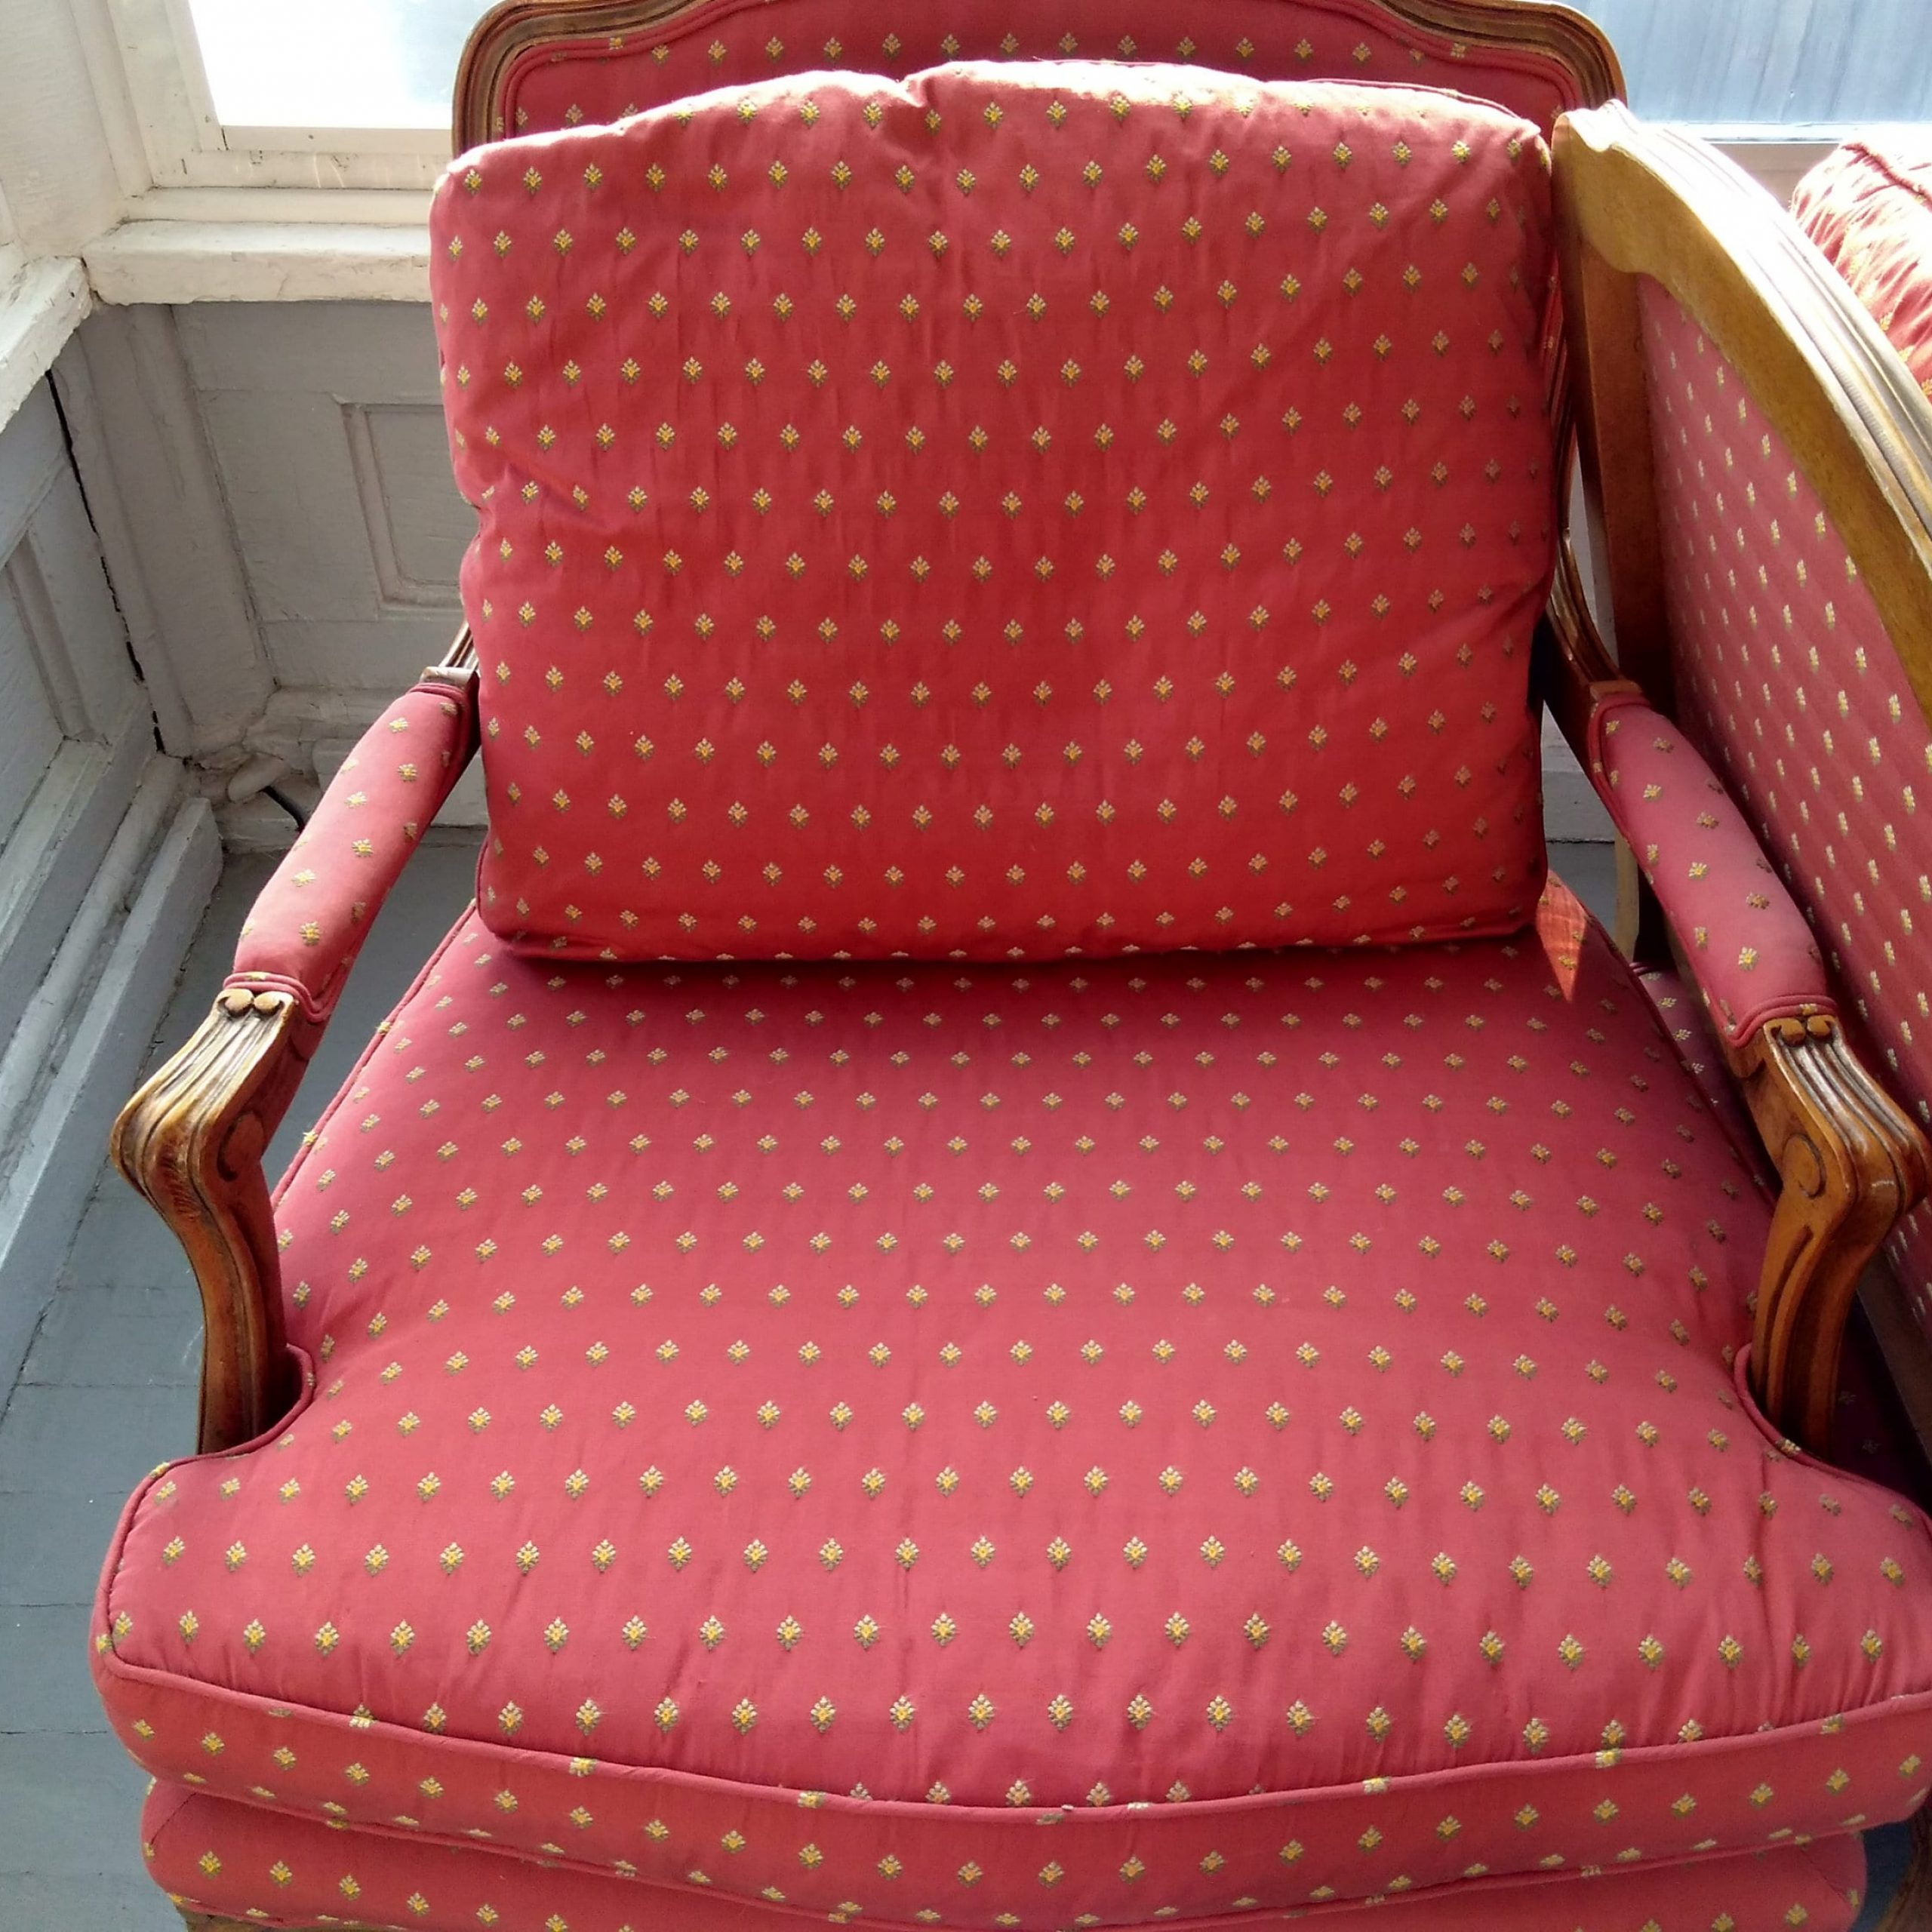 Sofa Chairs Arm Chairs Wood Upholstered Chairs Queen Anne In Sofa Arm Chairs (View 2 of 15)